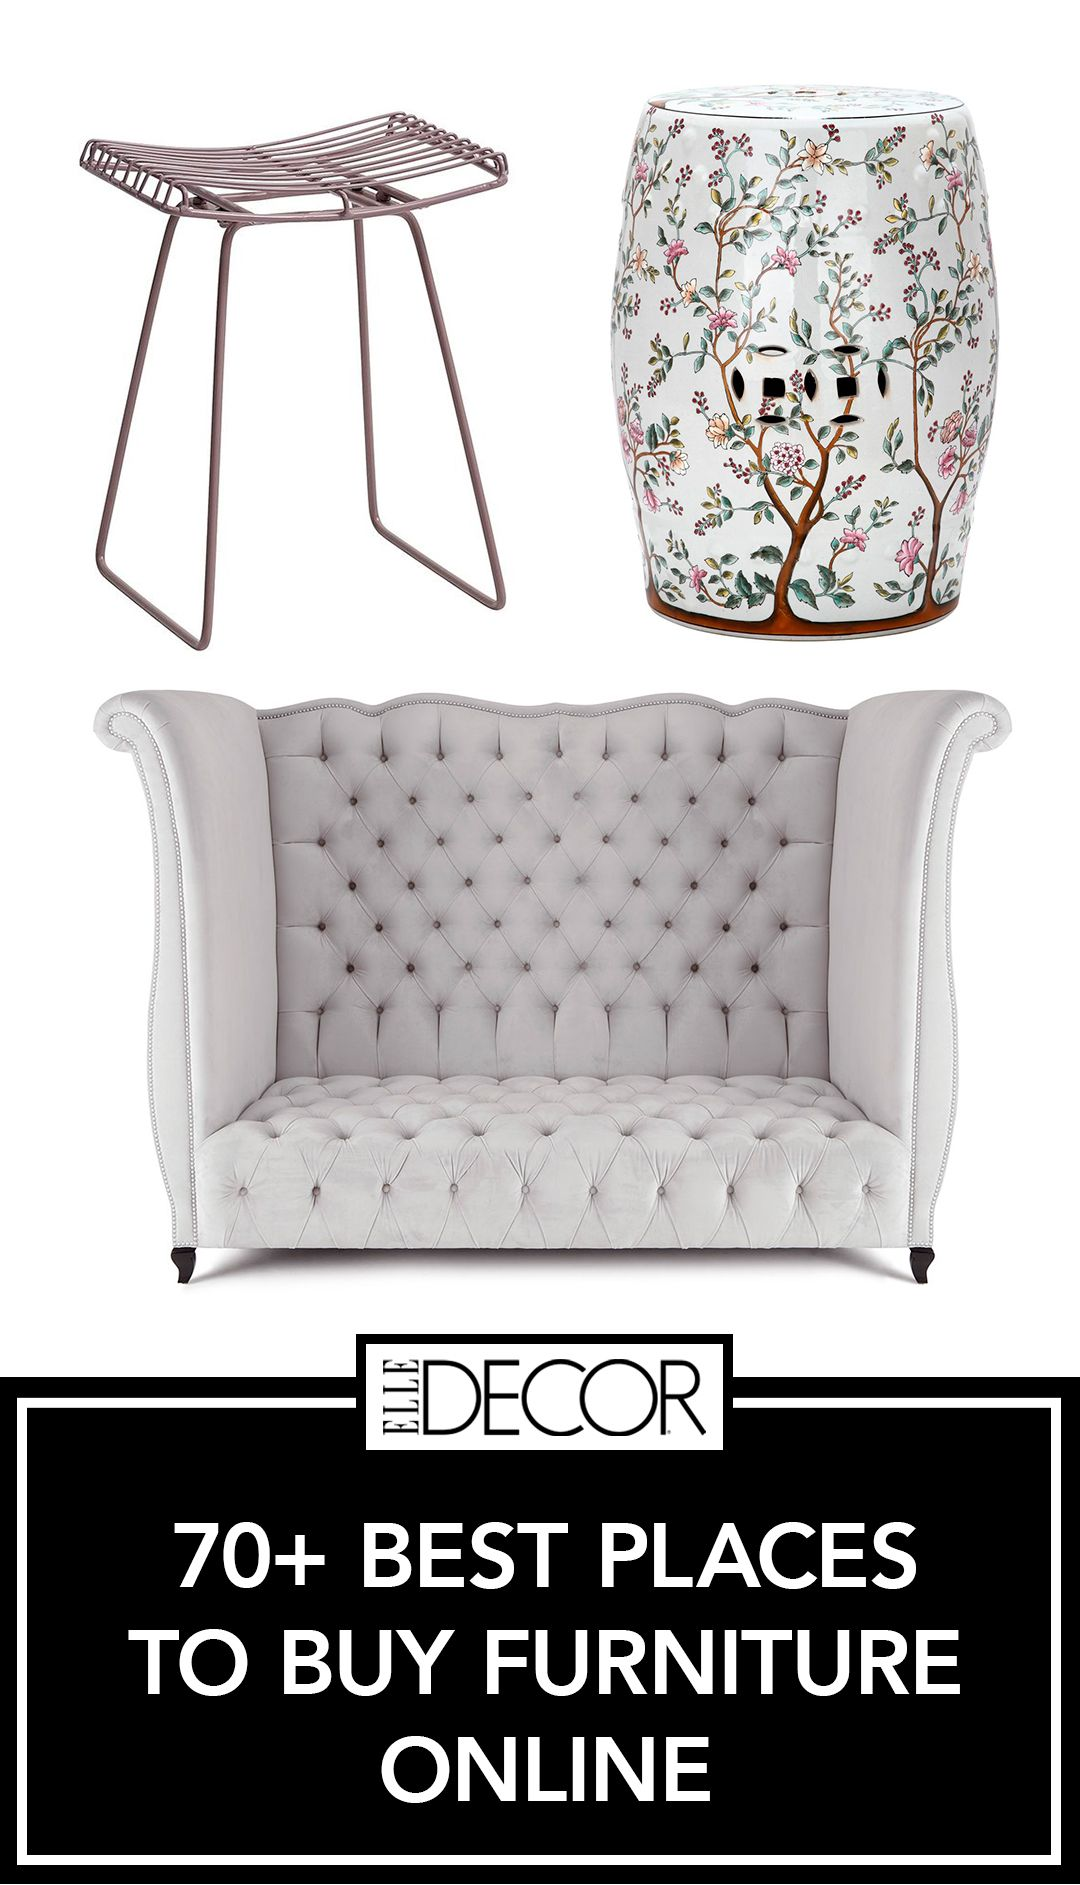 Decor Online Stores The 60 Best Places To Buy Furniture Online Furniture Cool